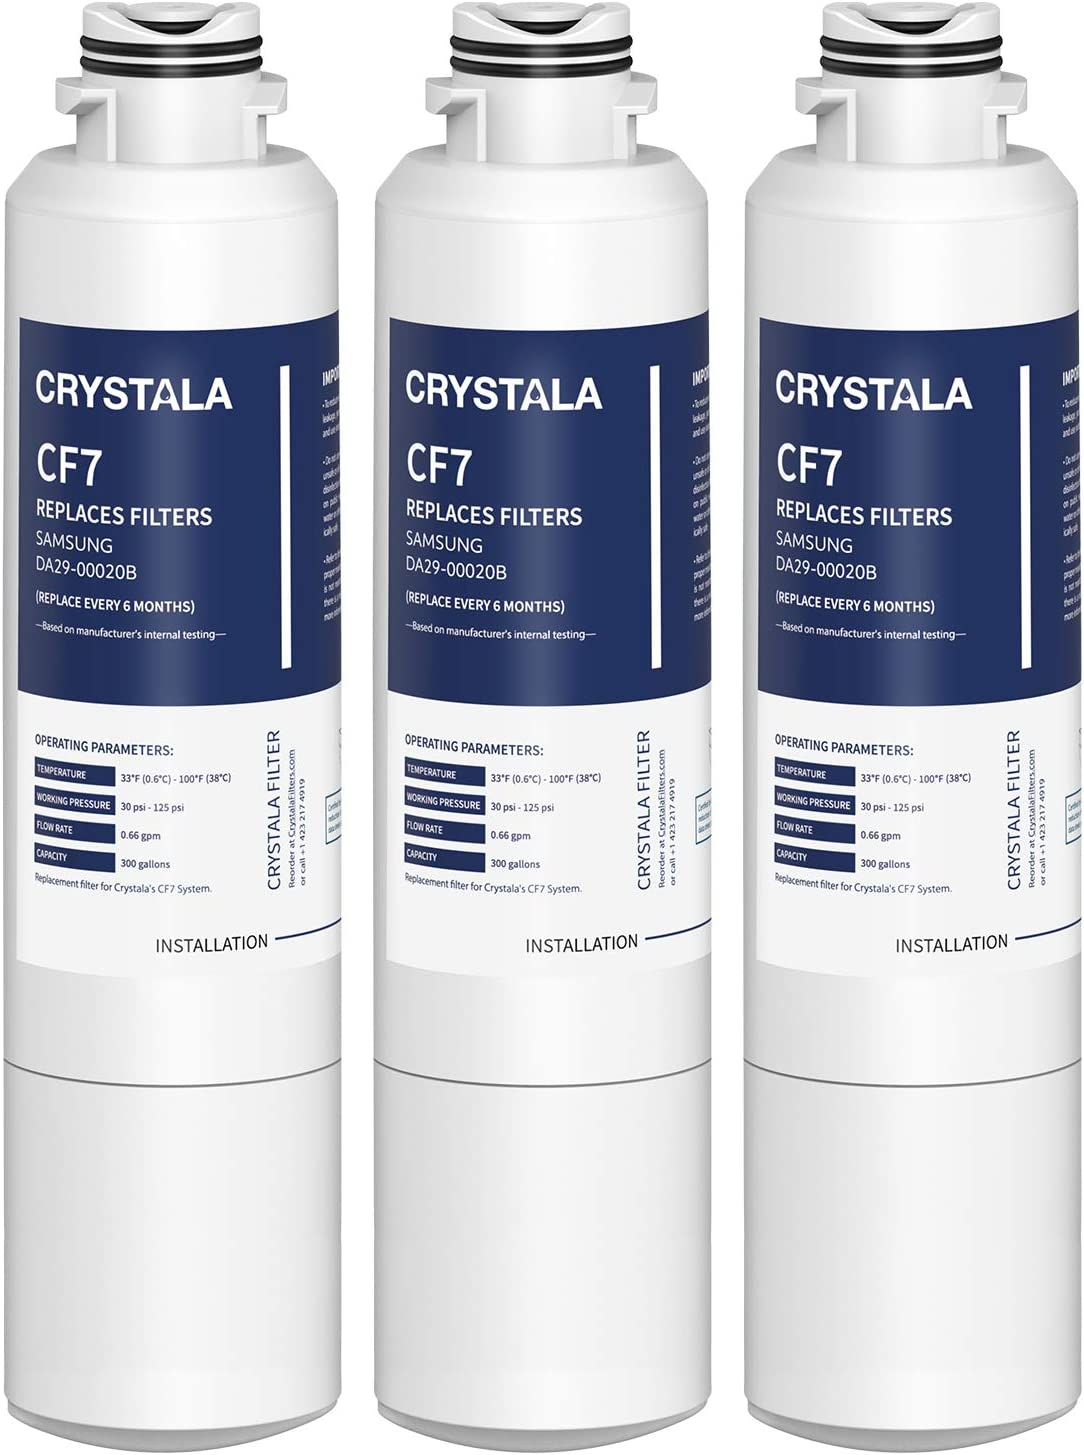 Crystala Filters DA29-00020B Refrigerator Water Filter Replacement for Samsung, CF7 NSF 53&42 Certified Cartridges Compatible with DA29-00020A/B, DA2900020B, HAF-CIN, HAF-CIN/EXP, 46-9101 - 3 Packs